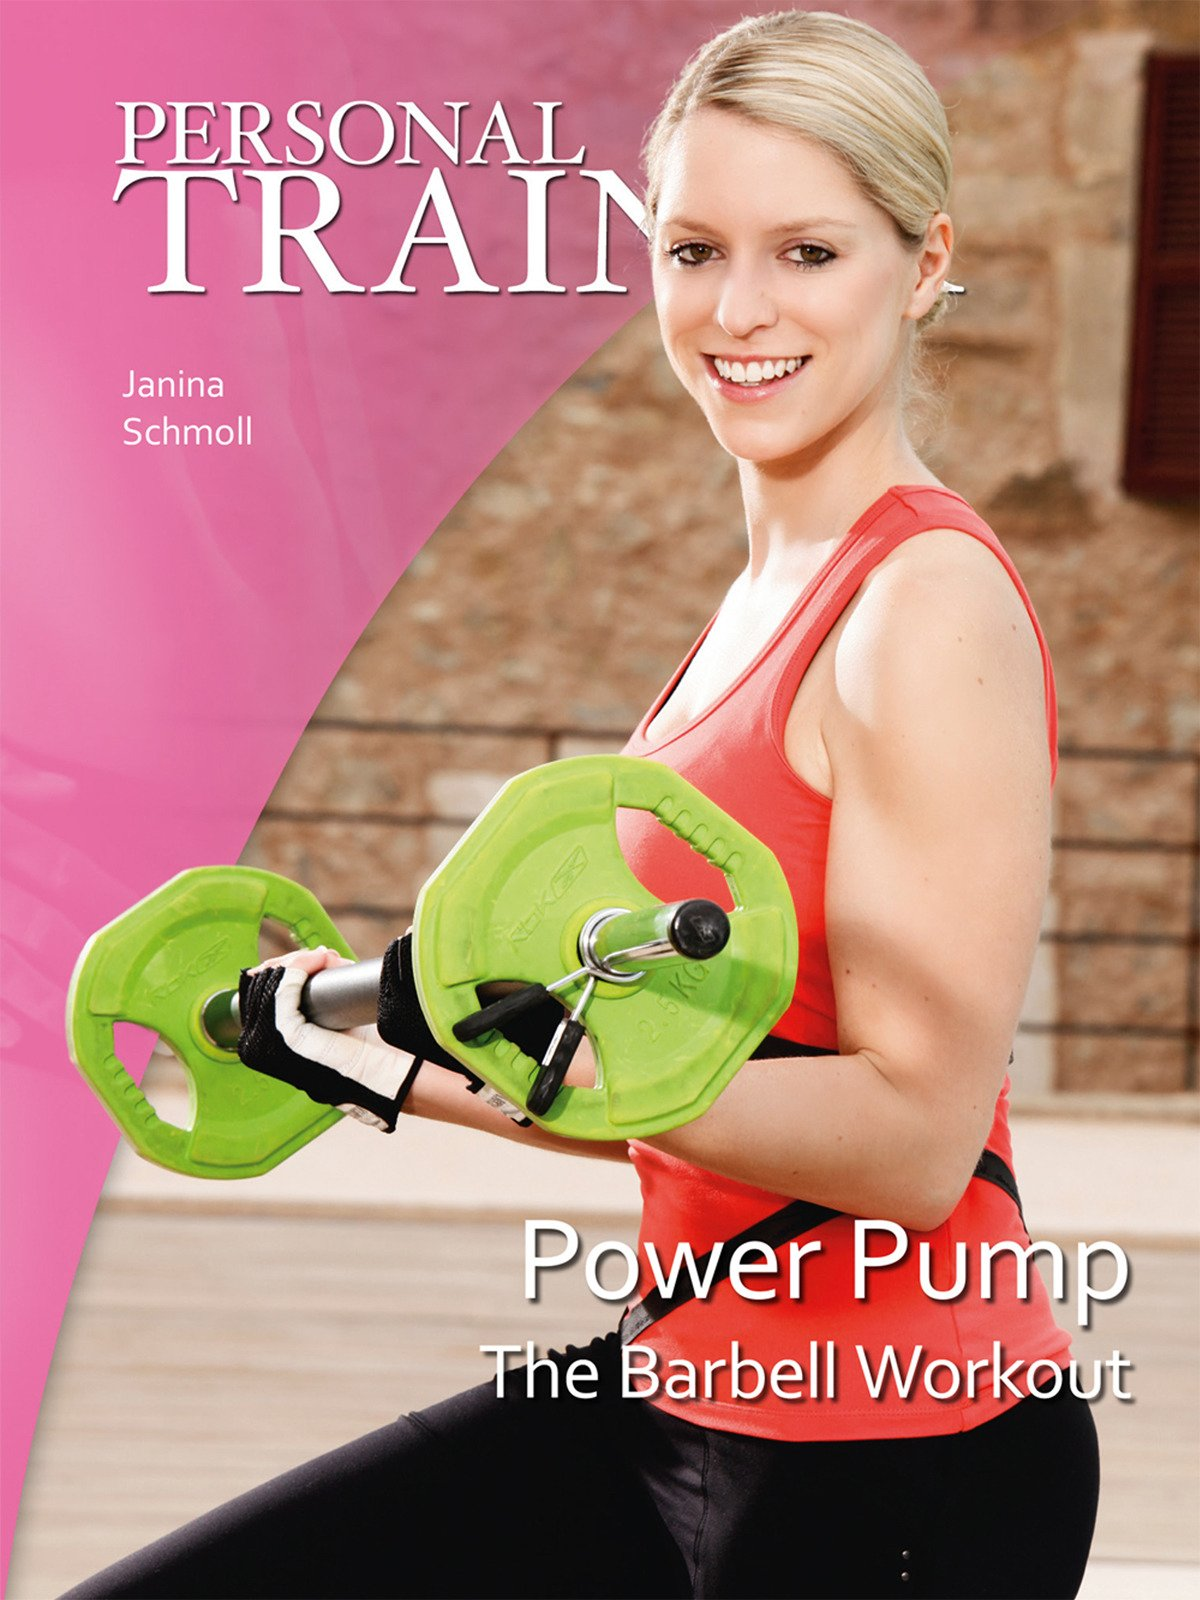 Personal Trainer: Power Pump